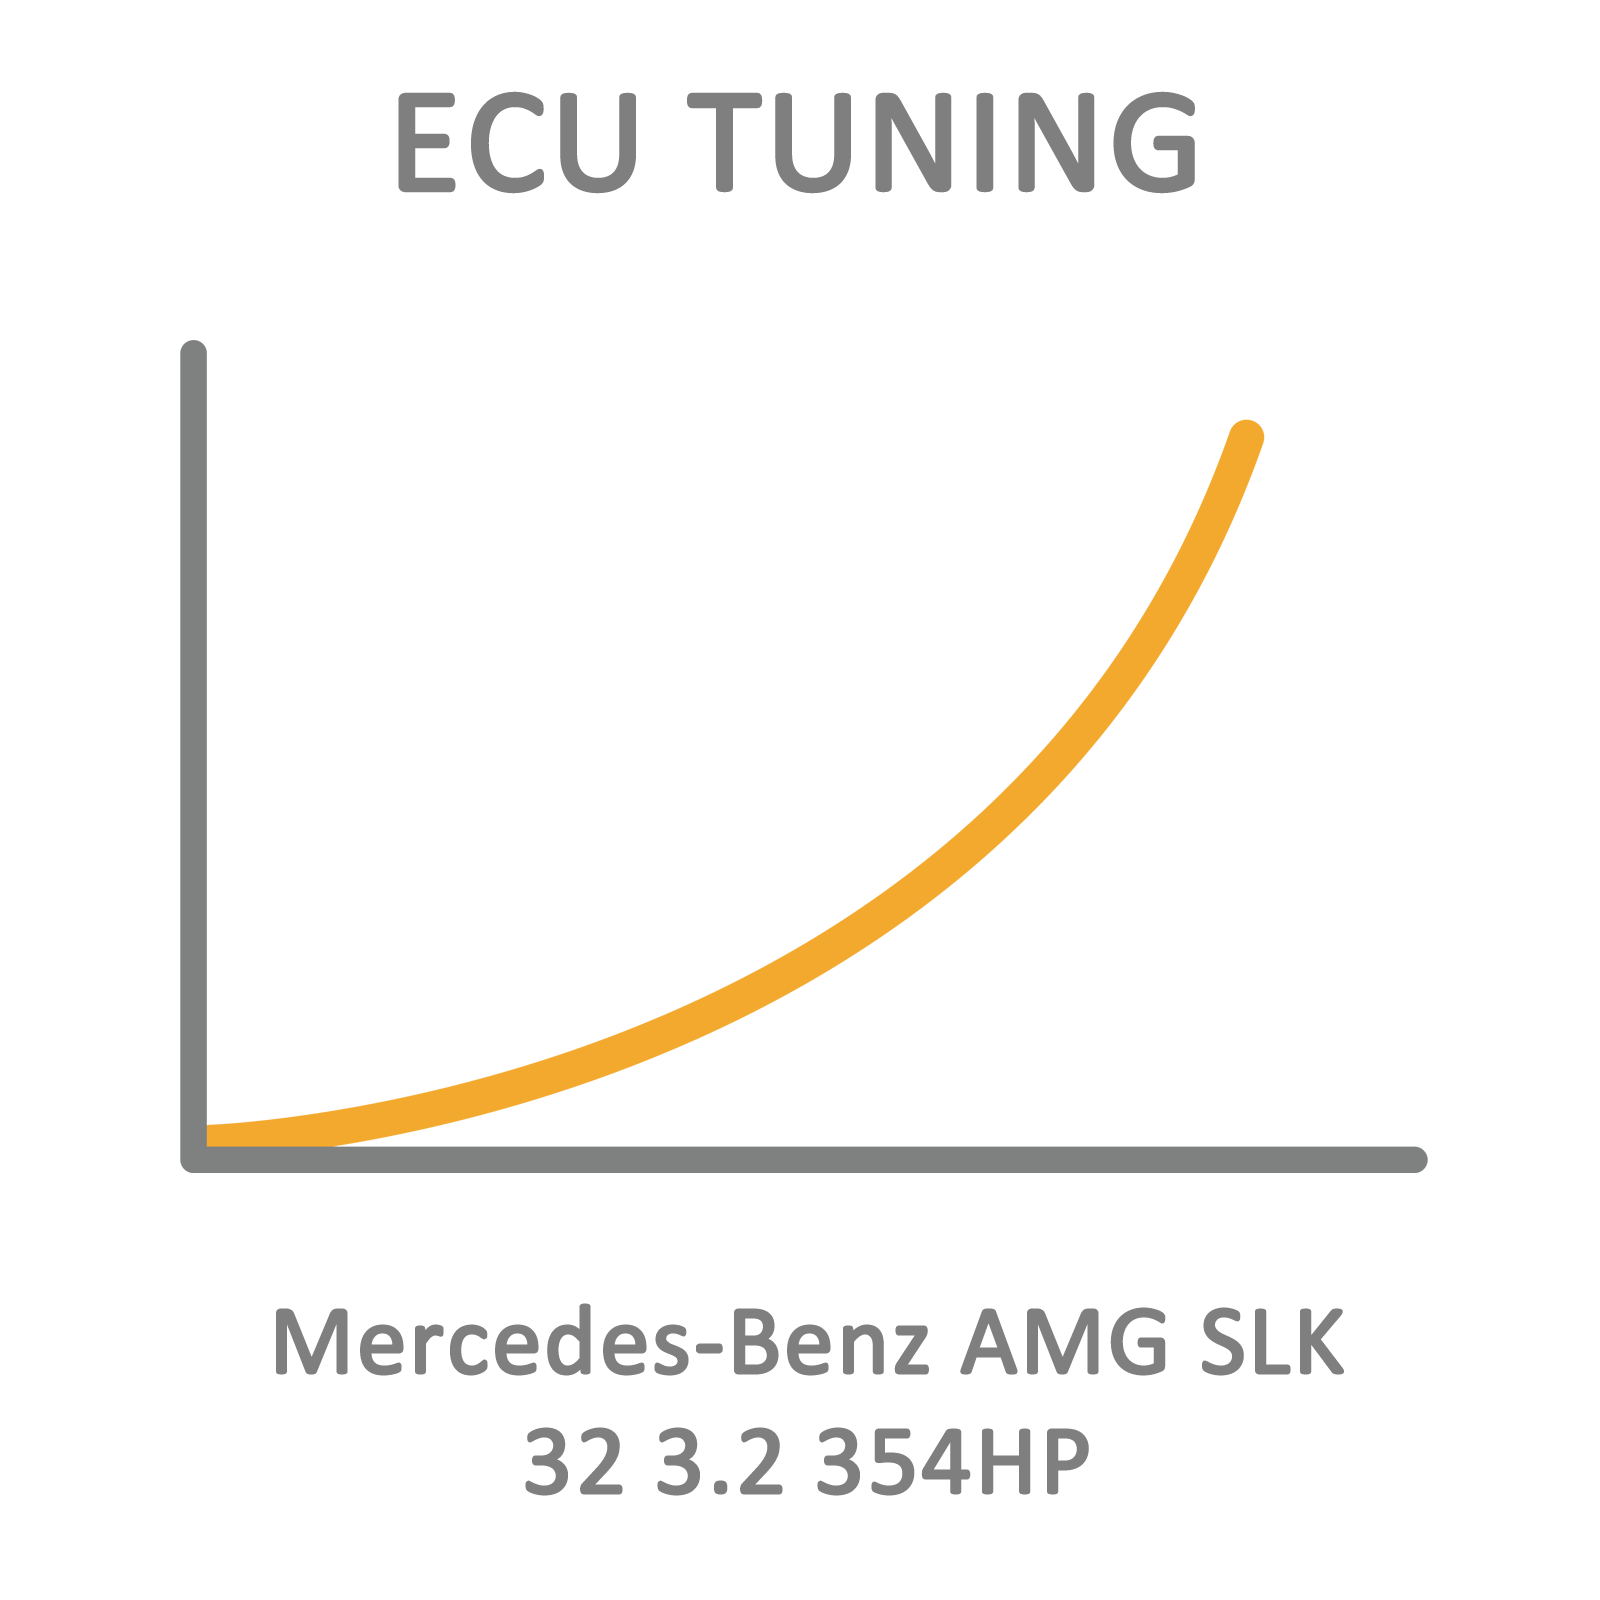 Mercedes-Benz AMG SLK 32 3.2 354HP ECU Tuning Remapping